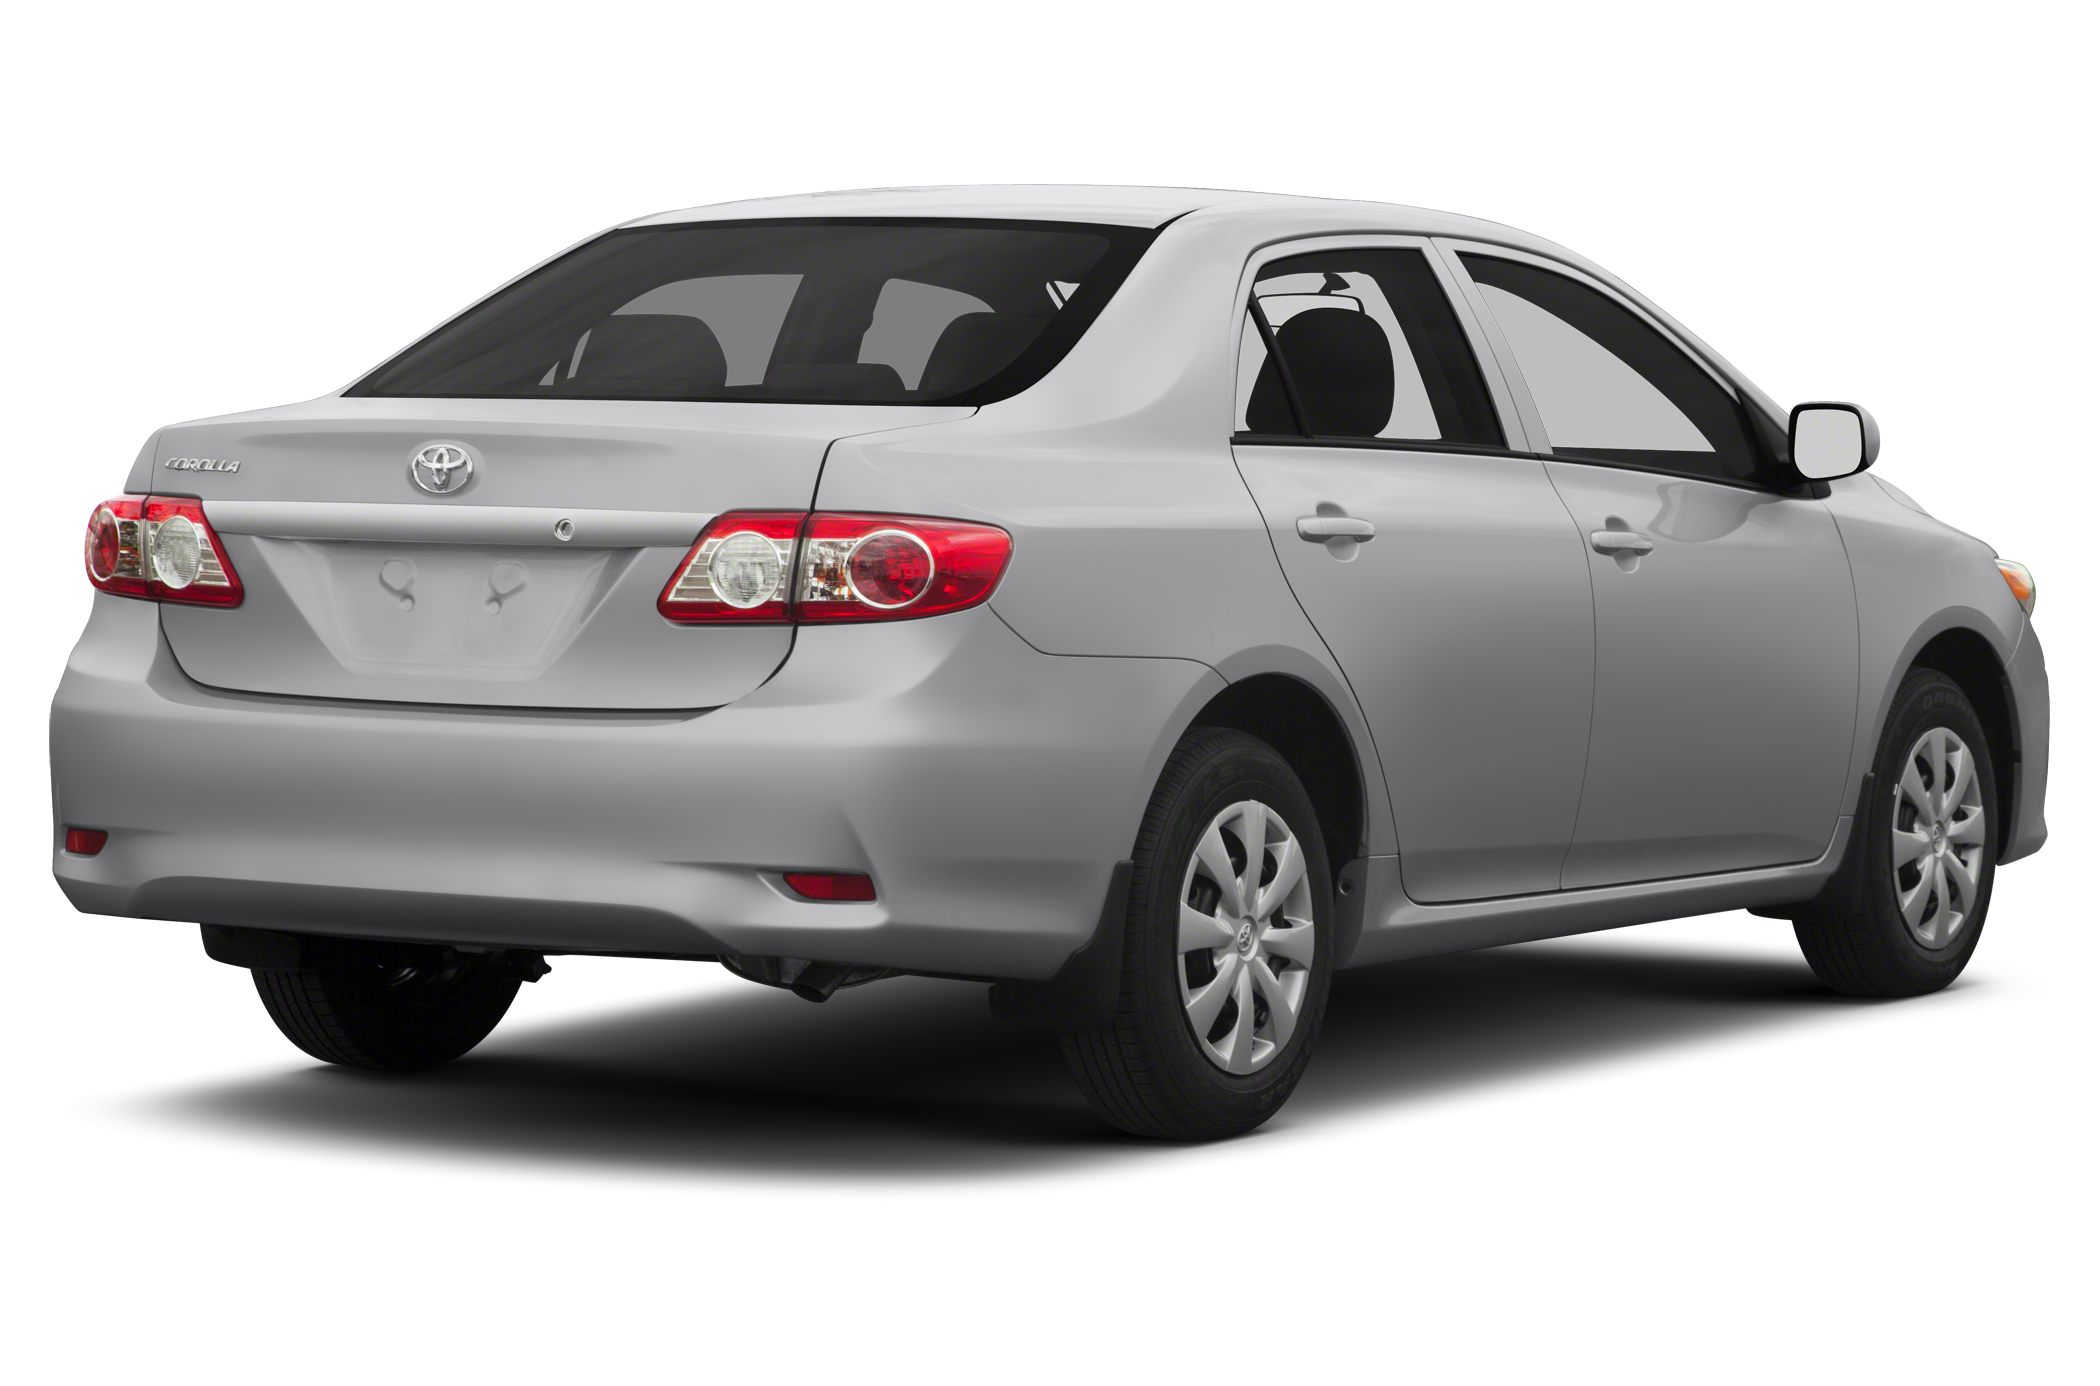 2011 Toyota Corolla LE Vehicle Options ABS Brakes Front Side Airbag Splash Guards Air Conditioning